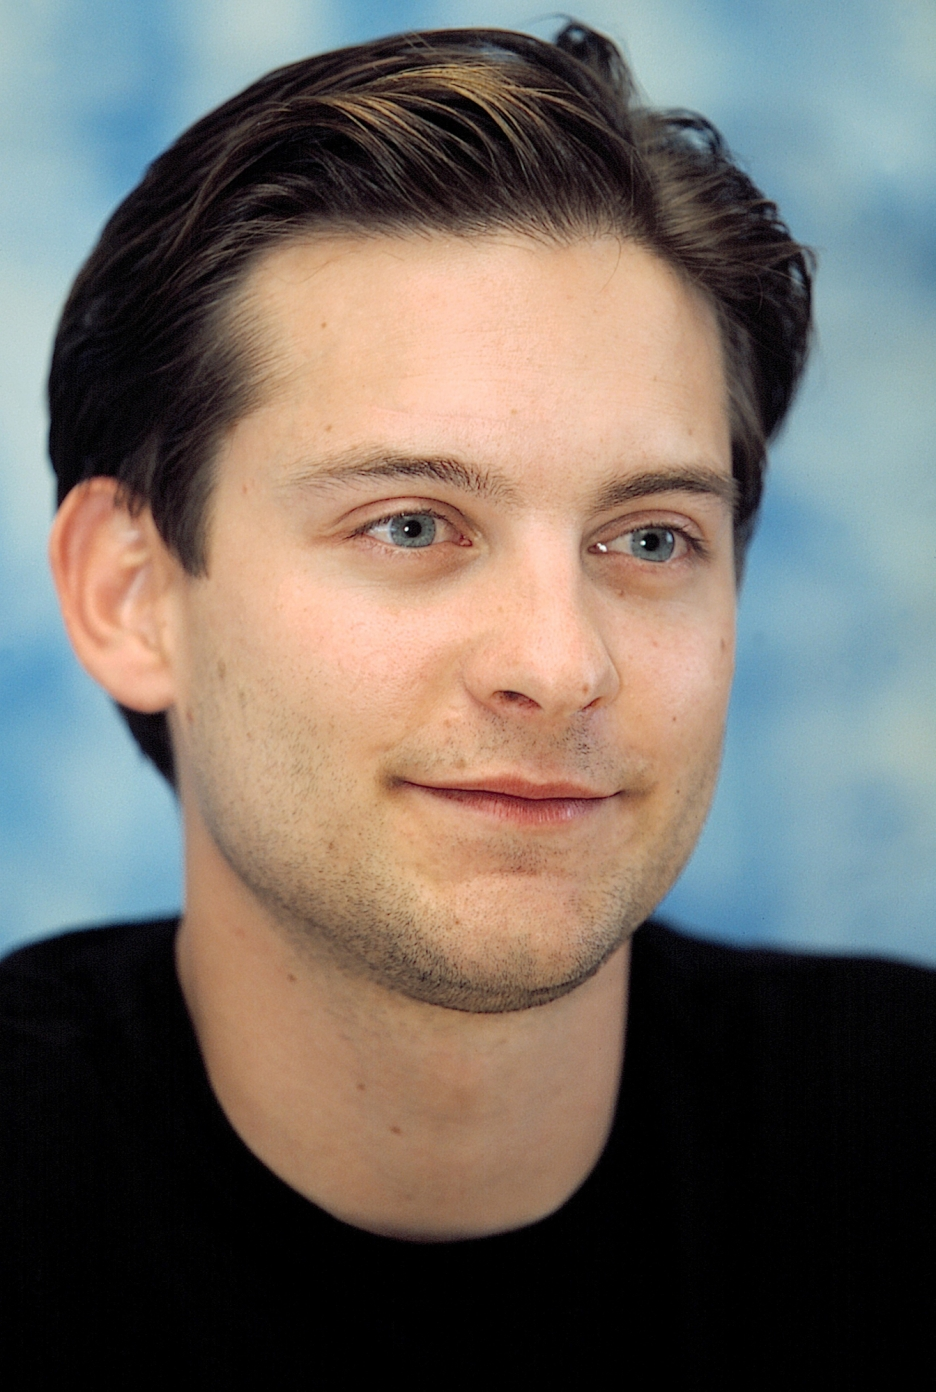 Tobey Maguire - photos...